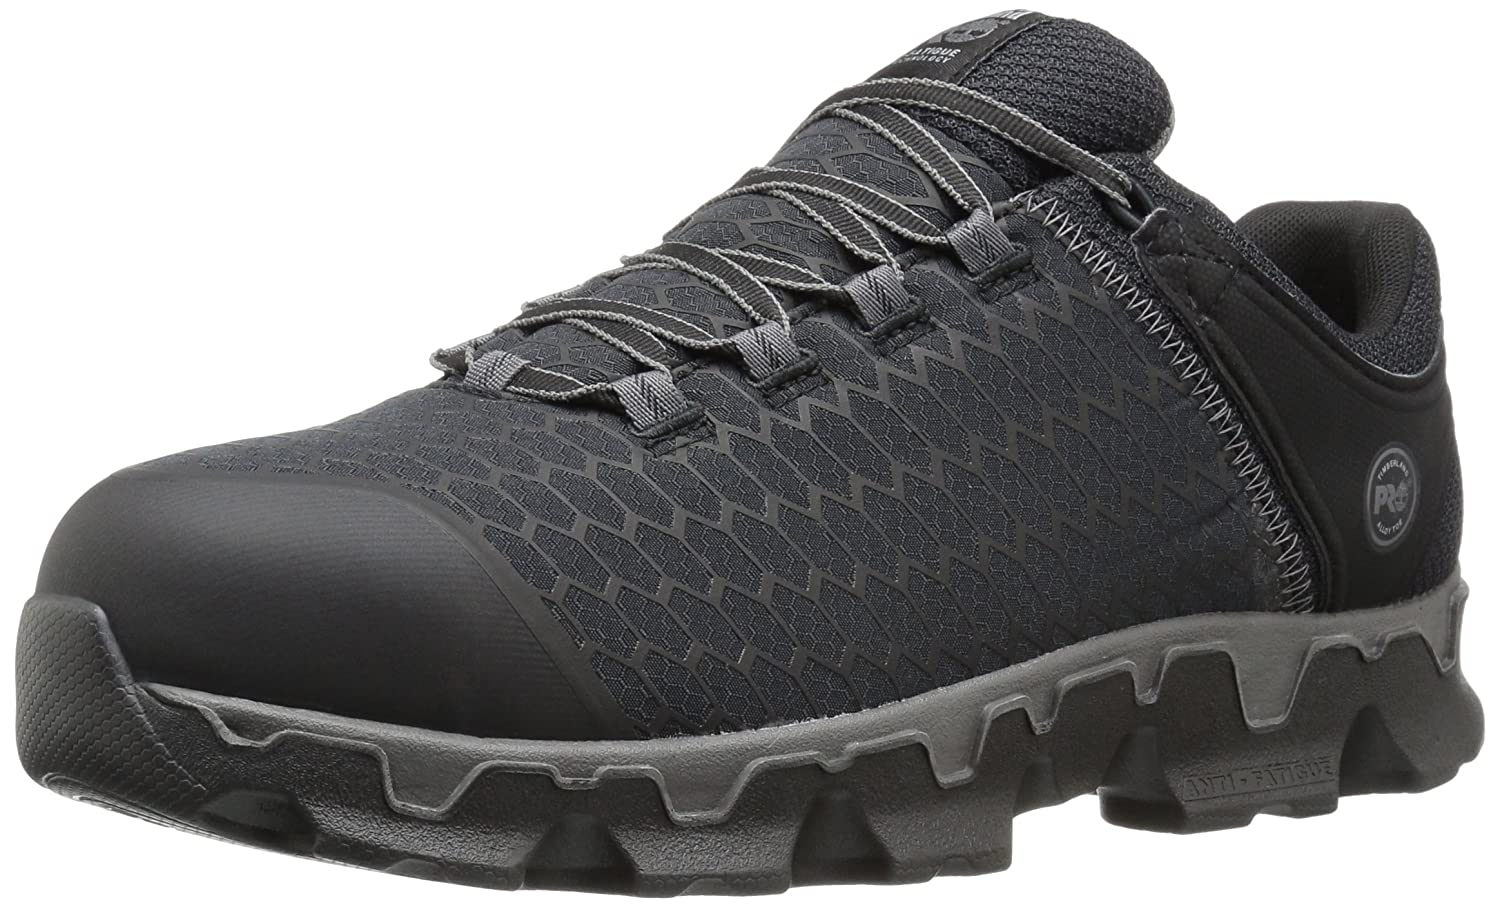 Timberland Pro Men's Powertrain Sport Alloy Toe Eh Industrial and Construction Shoe